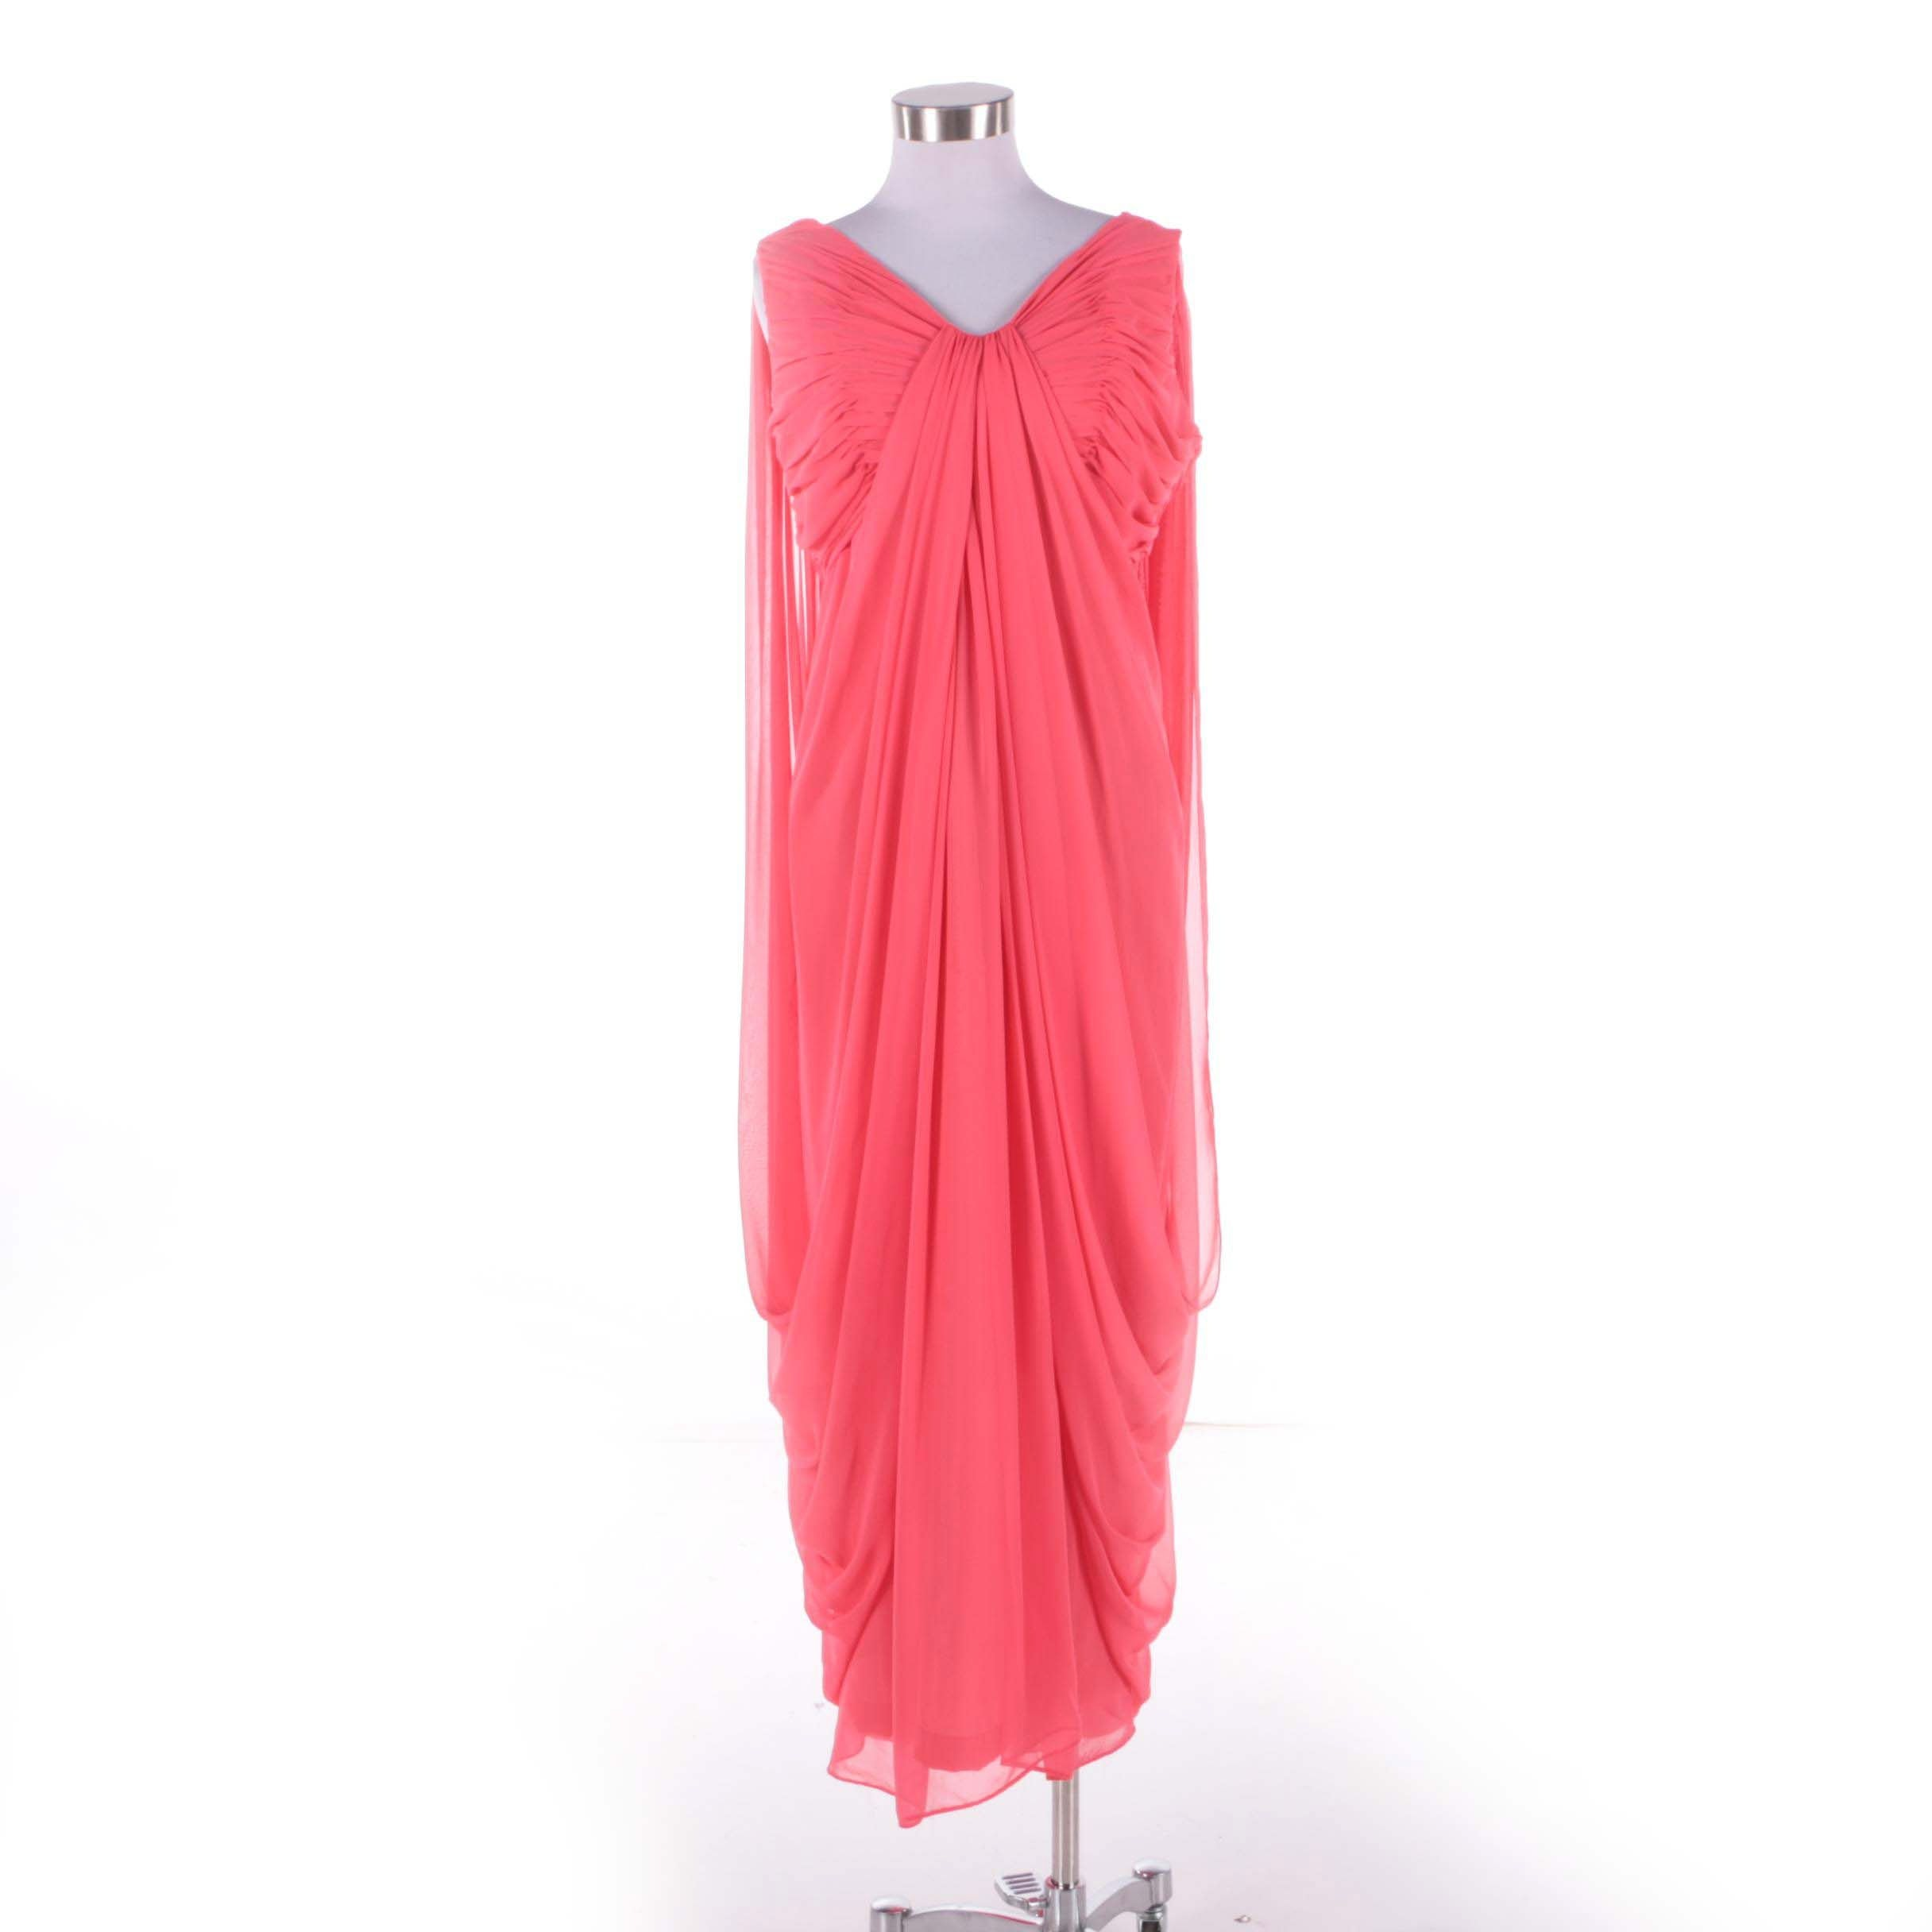 1970s Vintage Victor Costa Coral Grecian Draped Chiffon Sleeveless Evening Dress